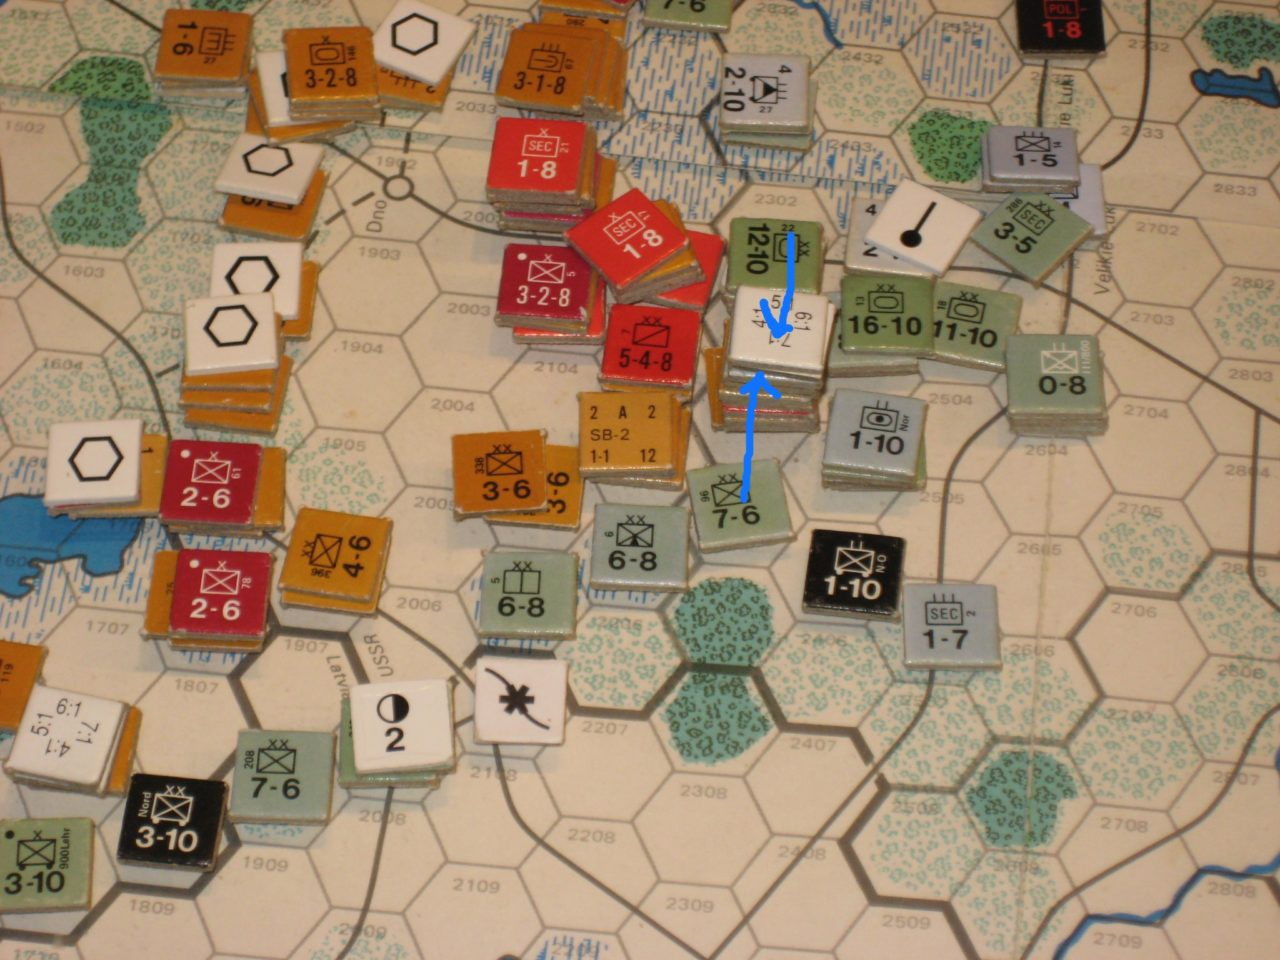 MAR I '42 Axis Turn: Soviet advance checked NW of Veliki Luki